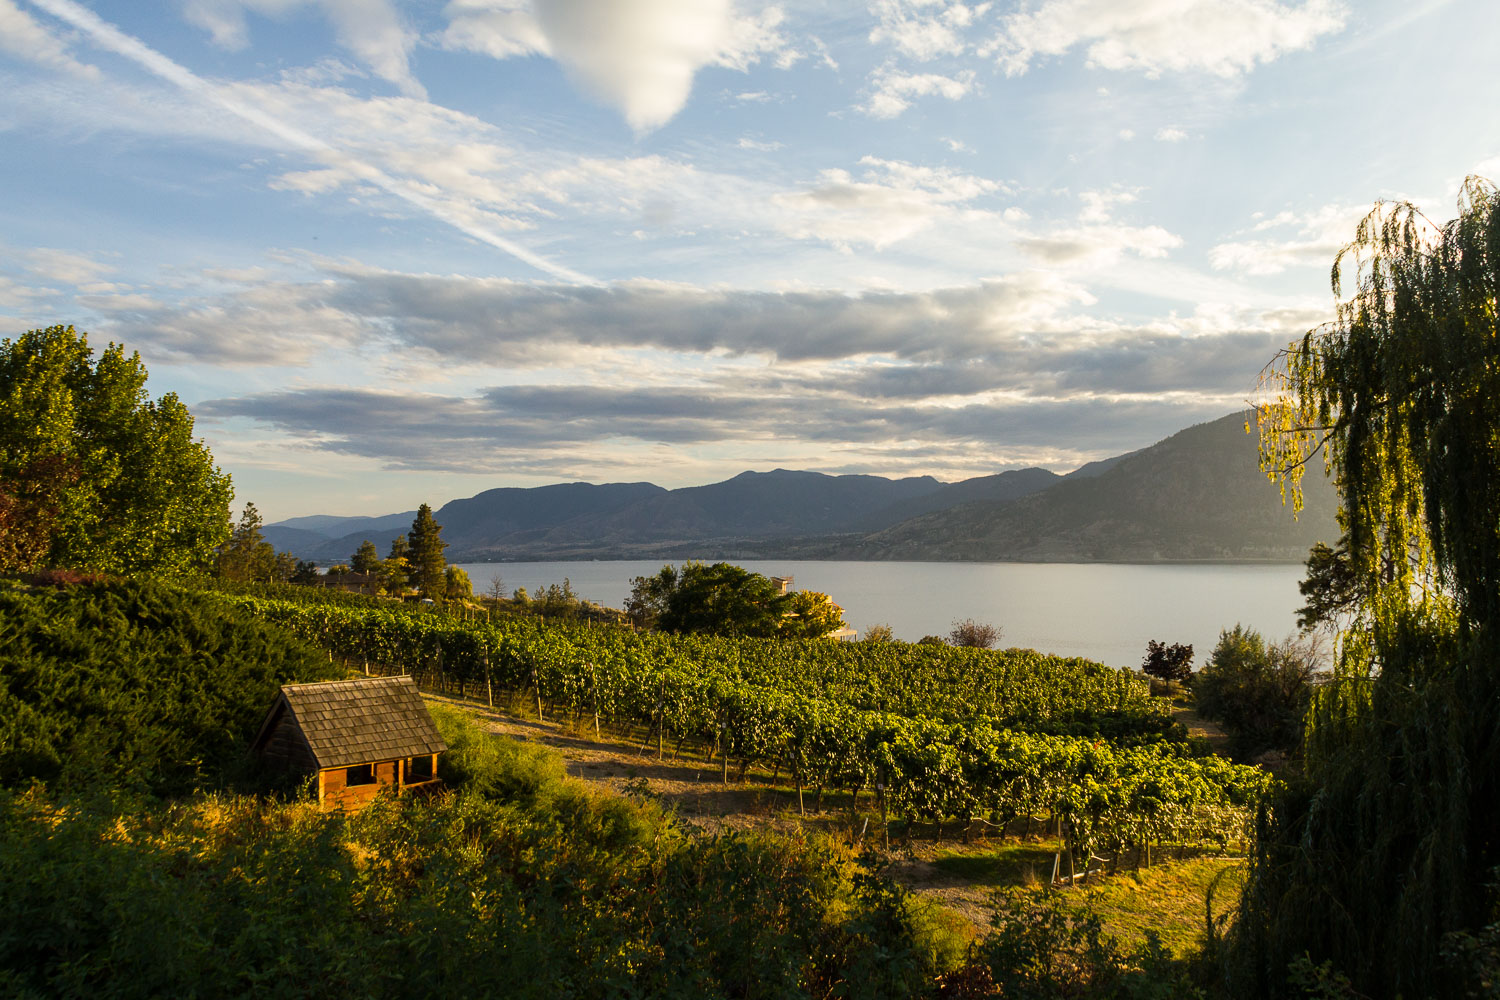 View with Vines over Lake Okanagan, Naramata, BC. Photo by Helena McMurdo/Endless Picnic